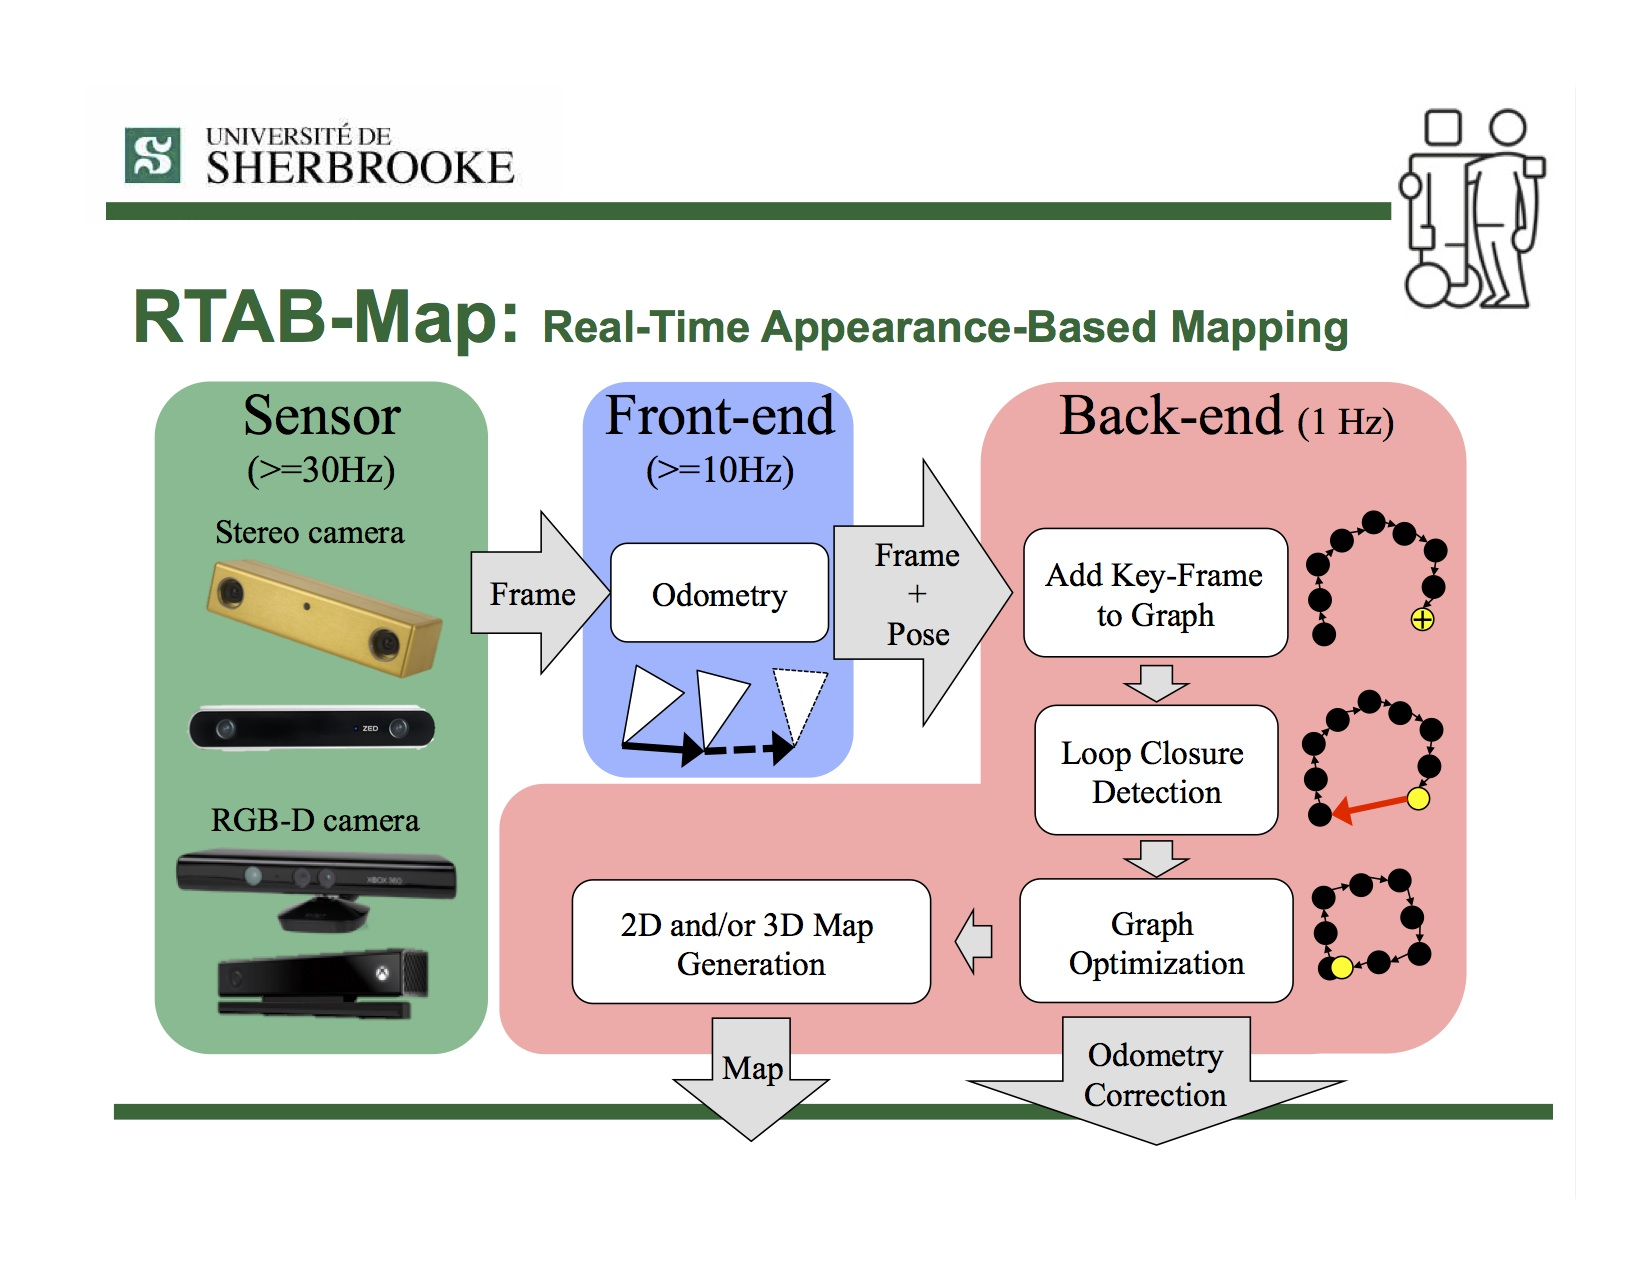 RTAB-Map | Real-Time Appearance-Based Mapping